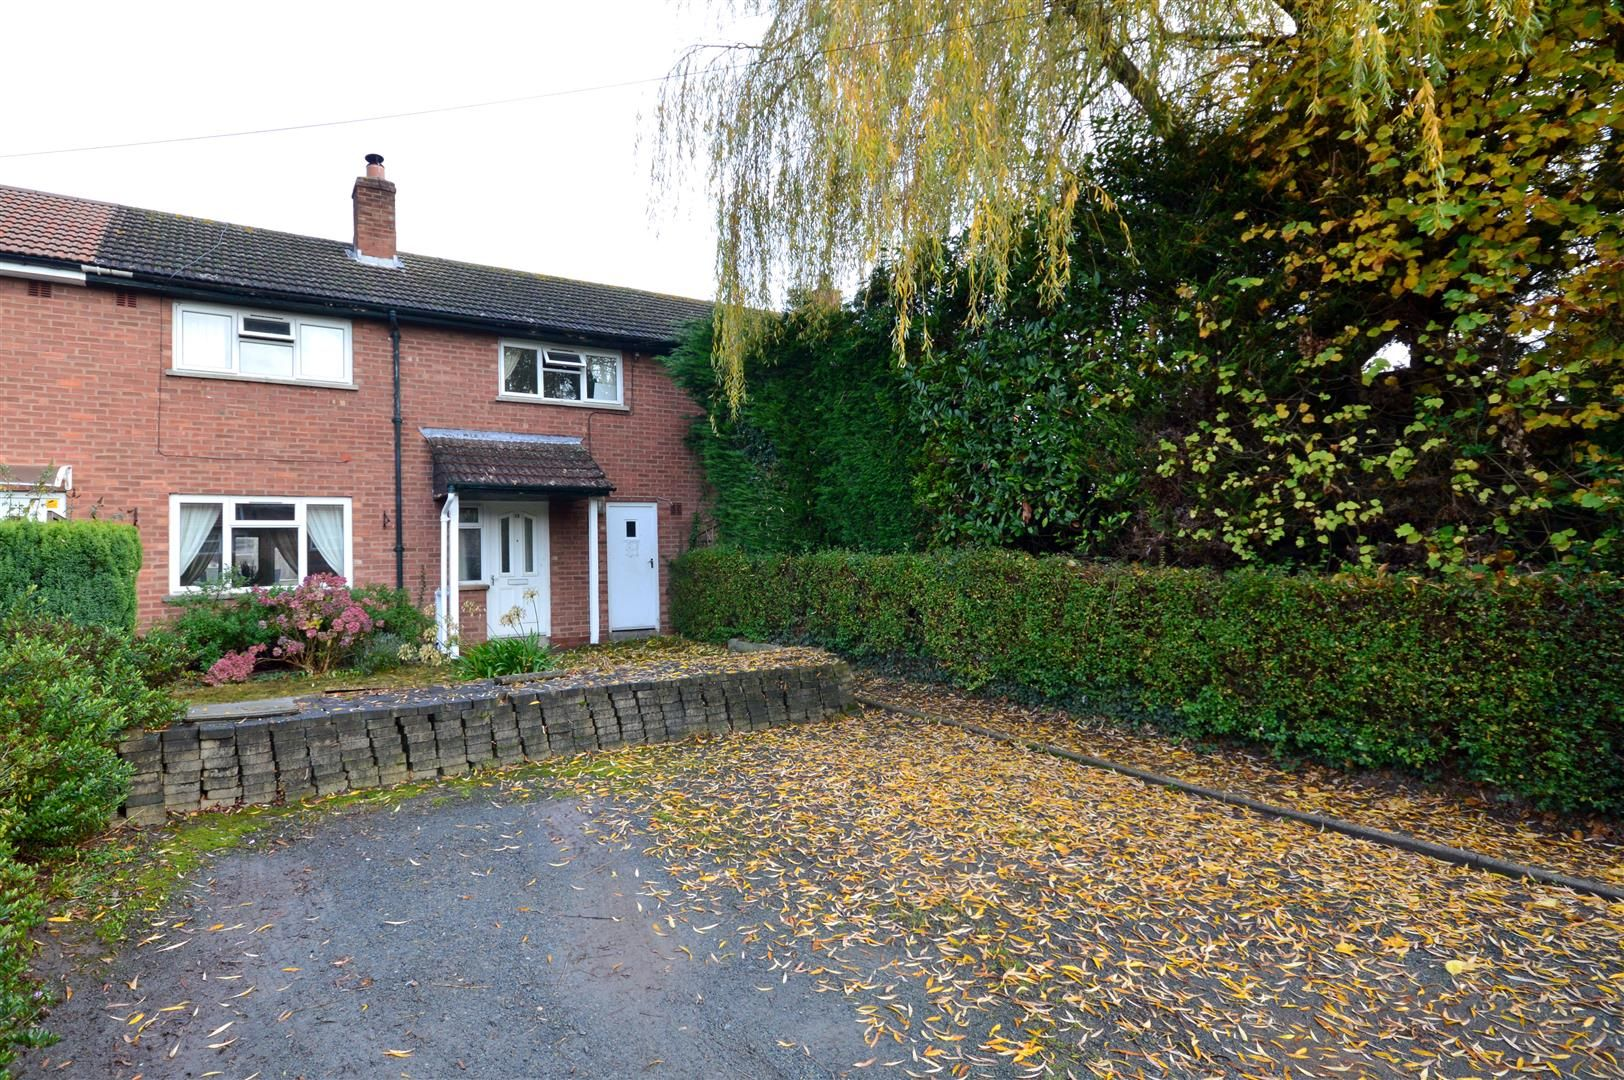 3 bed terraced for sale in Weobley 1